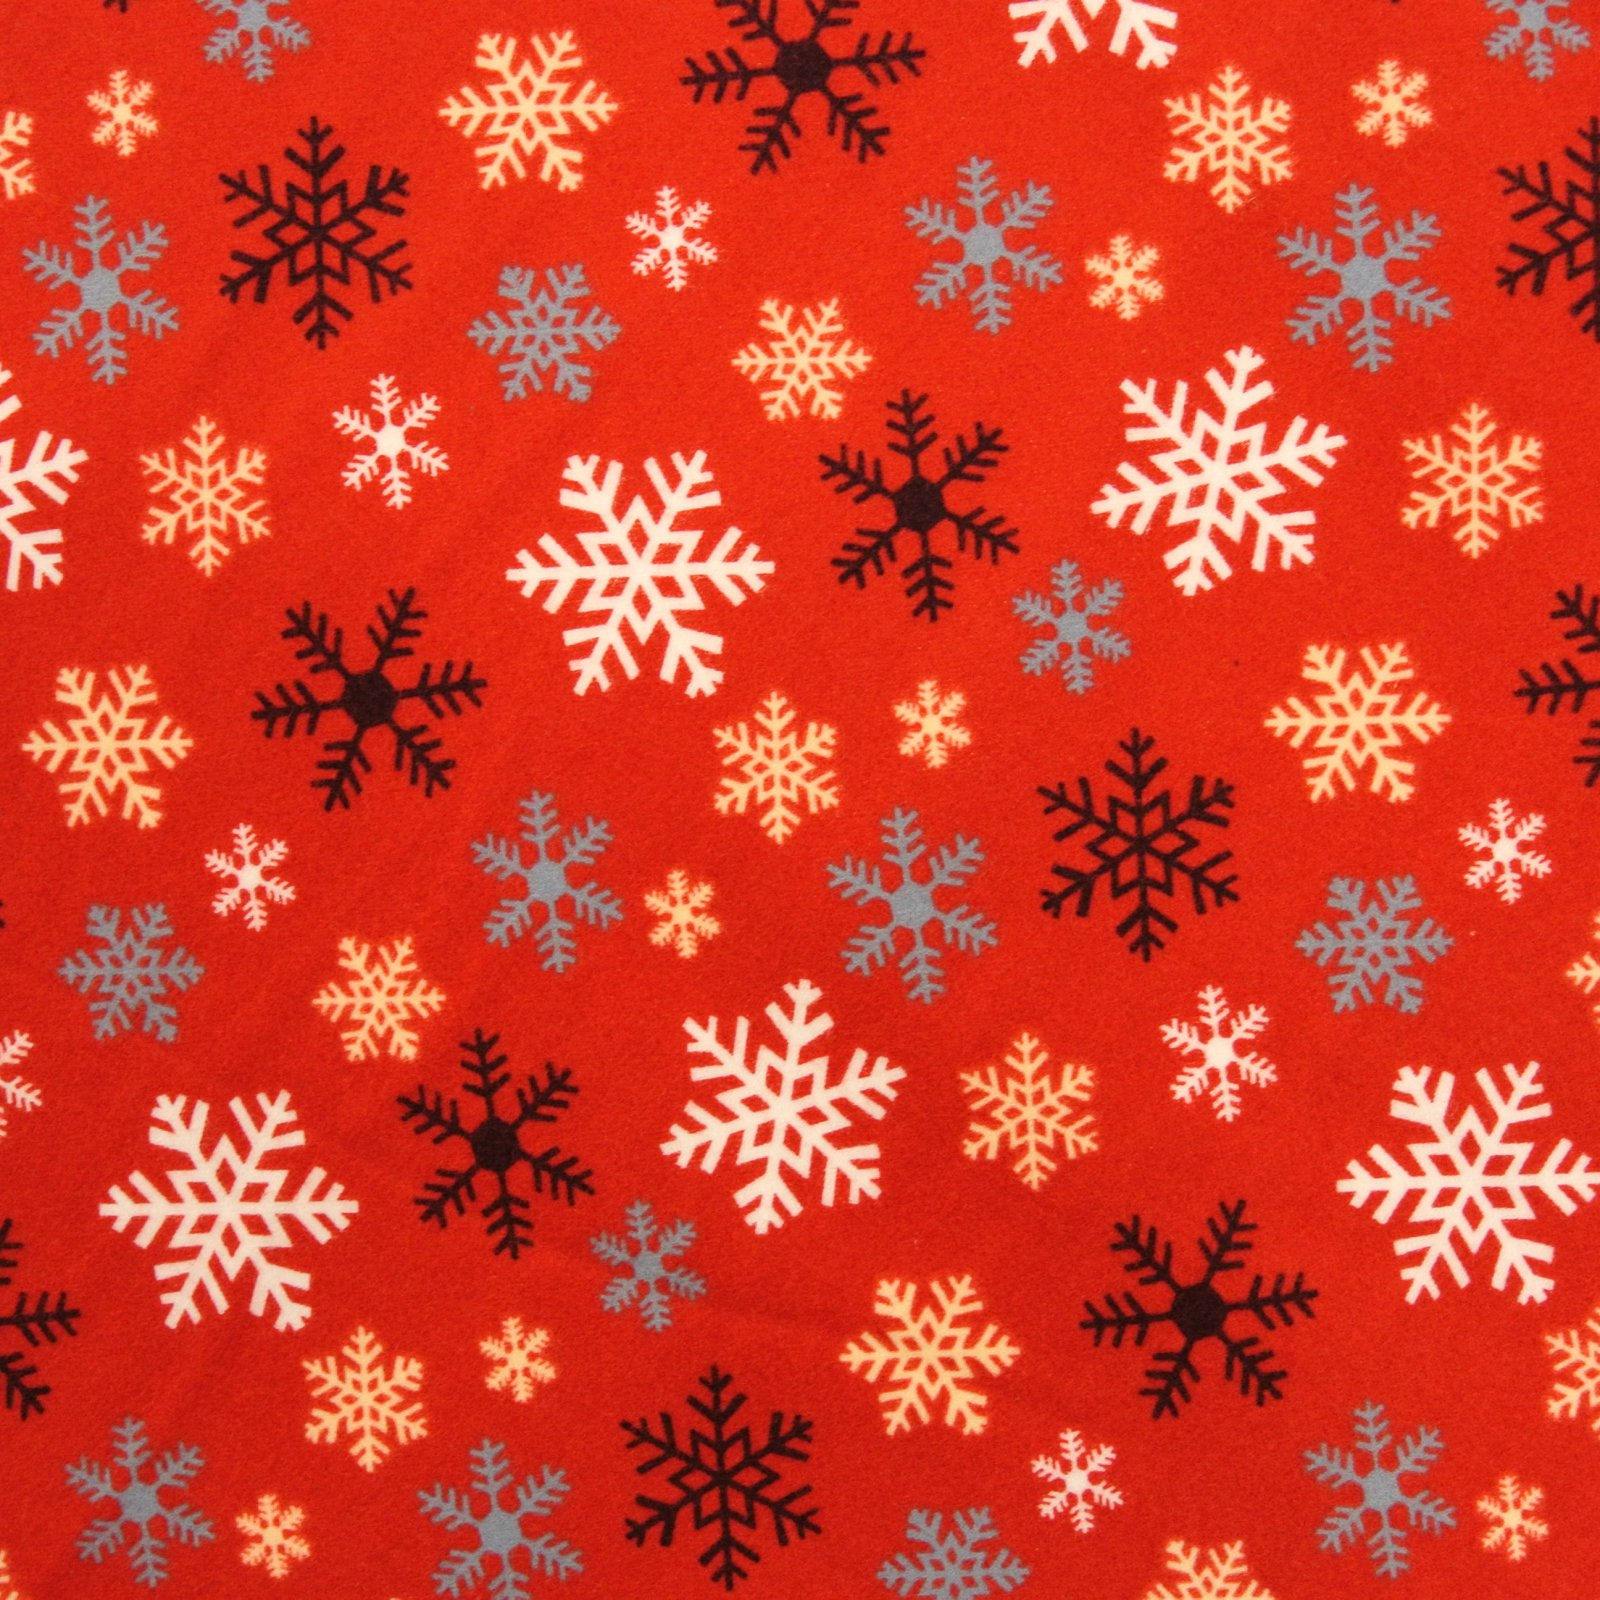 Crossroads Snow Flake red flannel